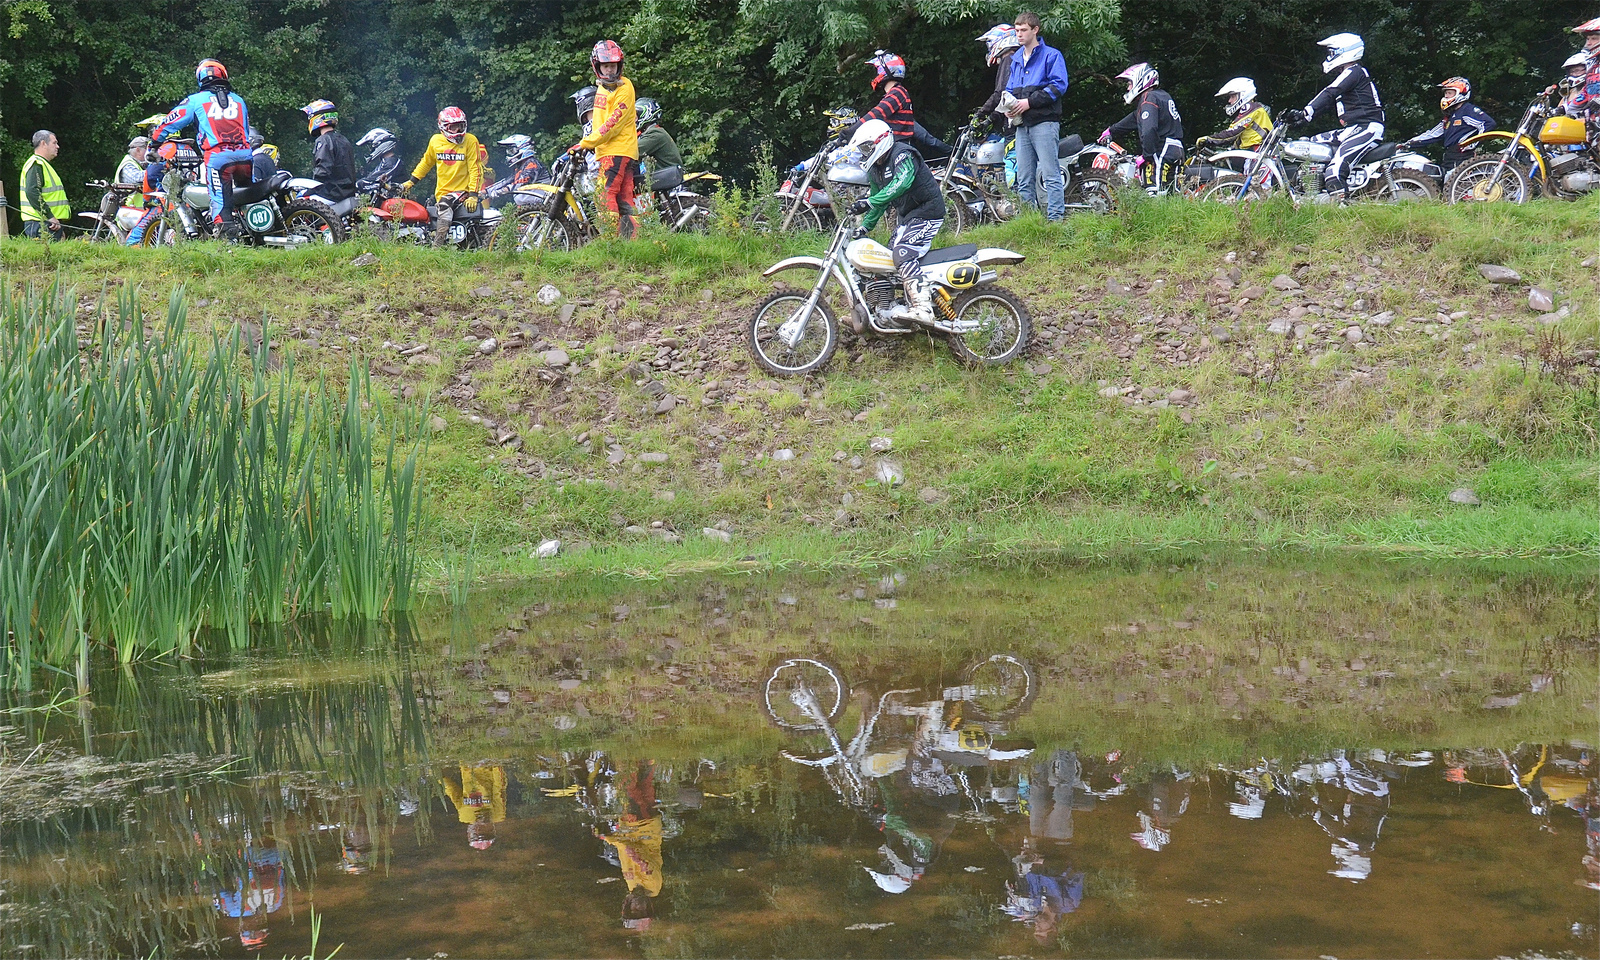 Llanthony Classic Scramble Photos September 2015 classicdirtbikerider.com..9